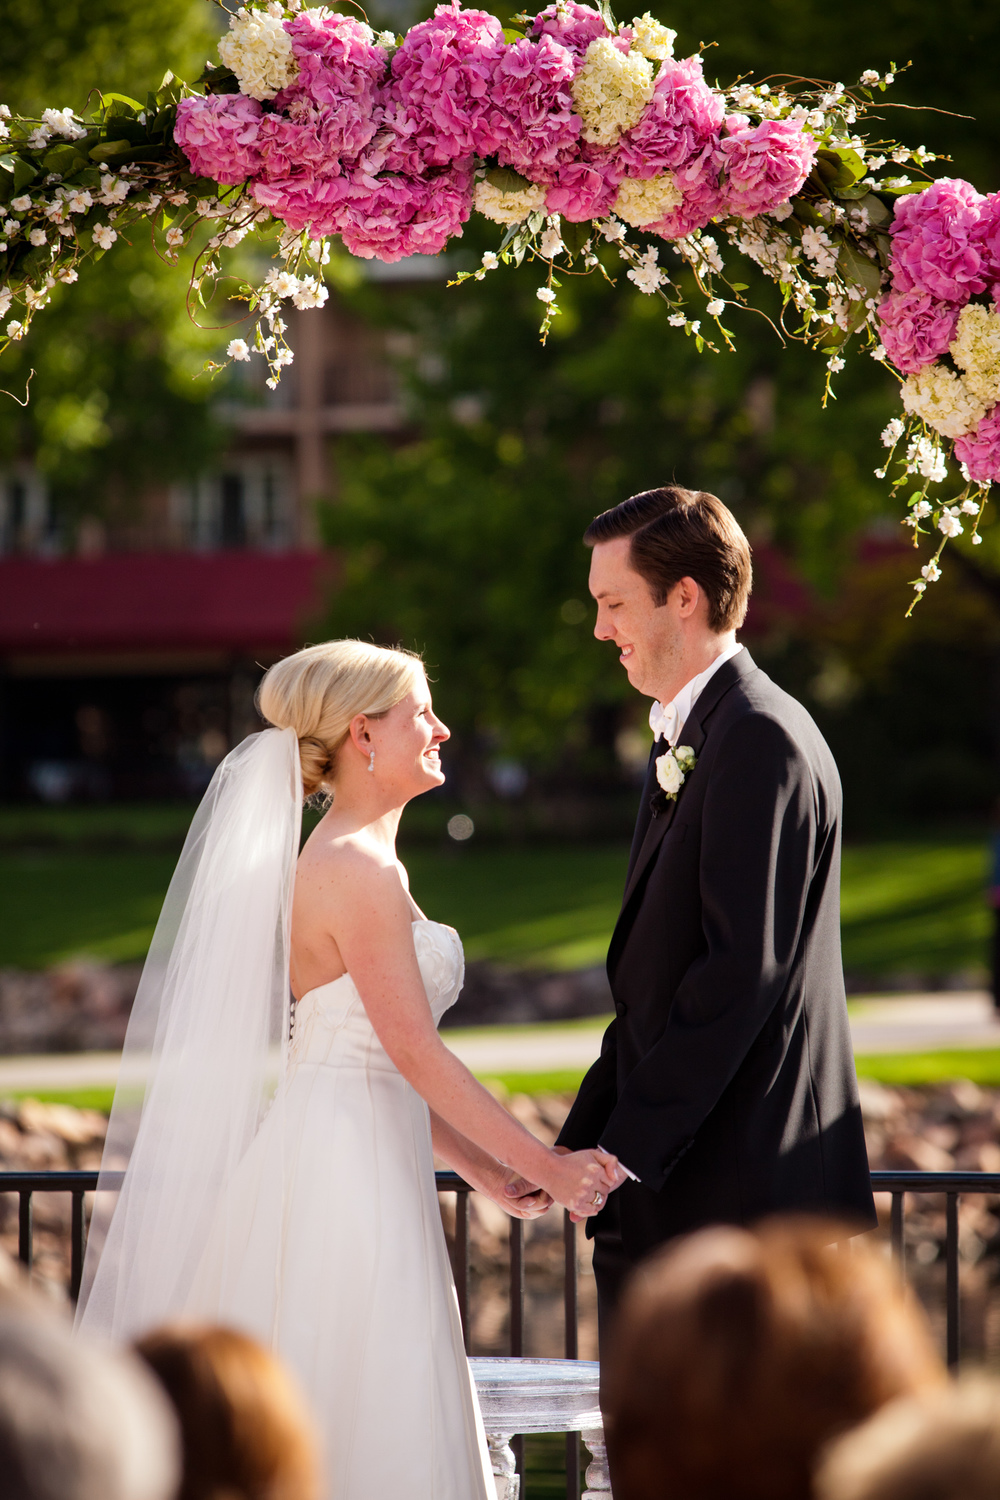 Broadmoor_Wedding_Colorado_Springs_079.JPG